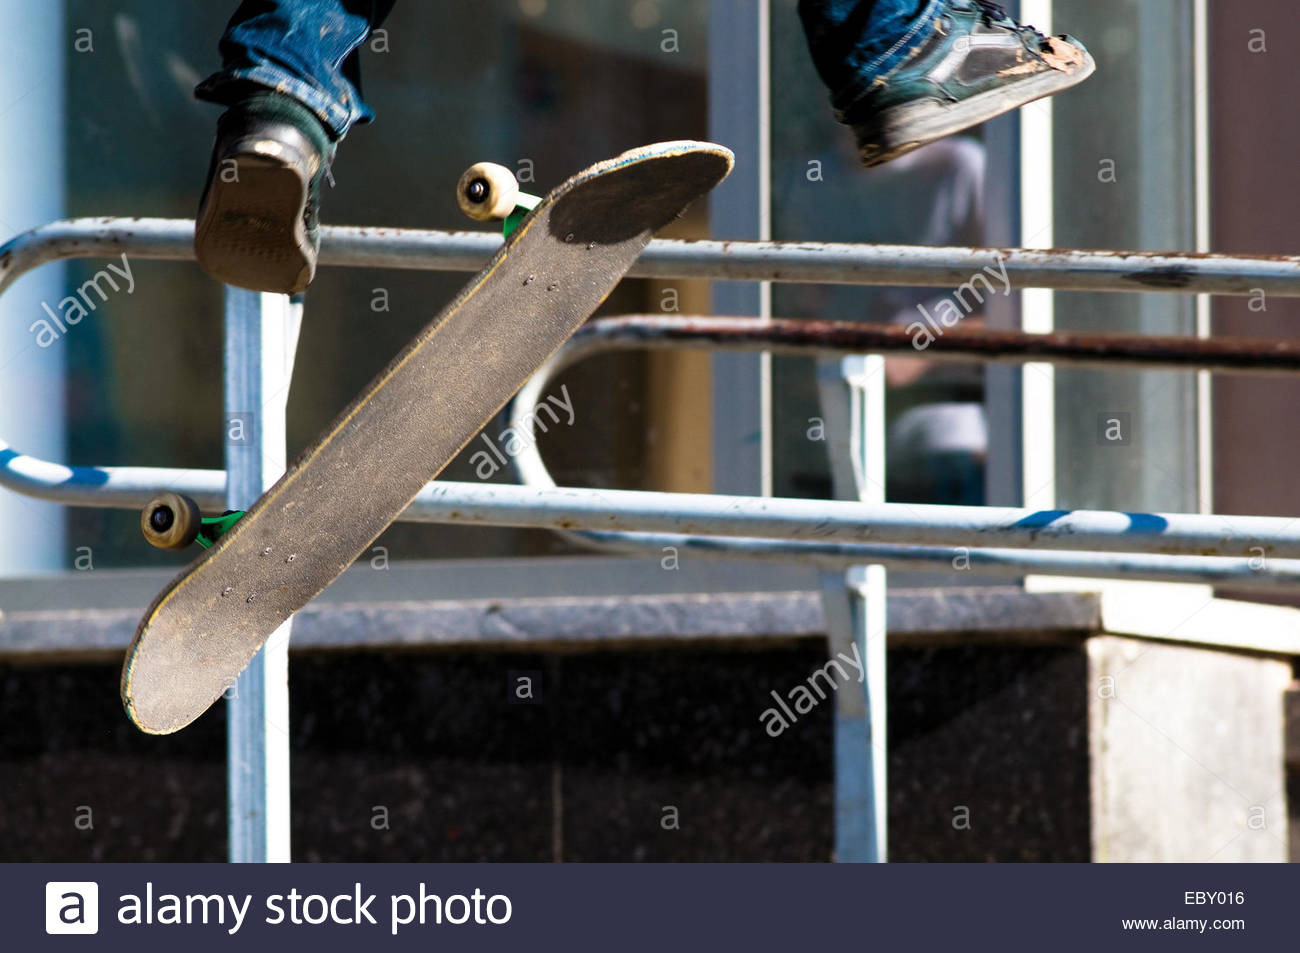 Close up of skate board in the air - Stock Image